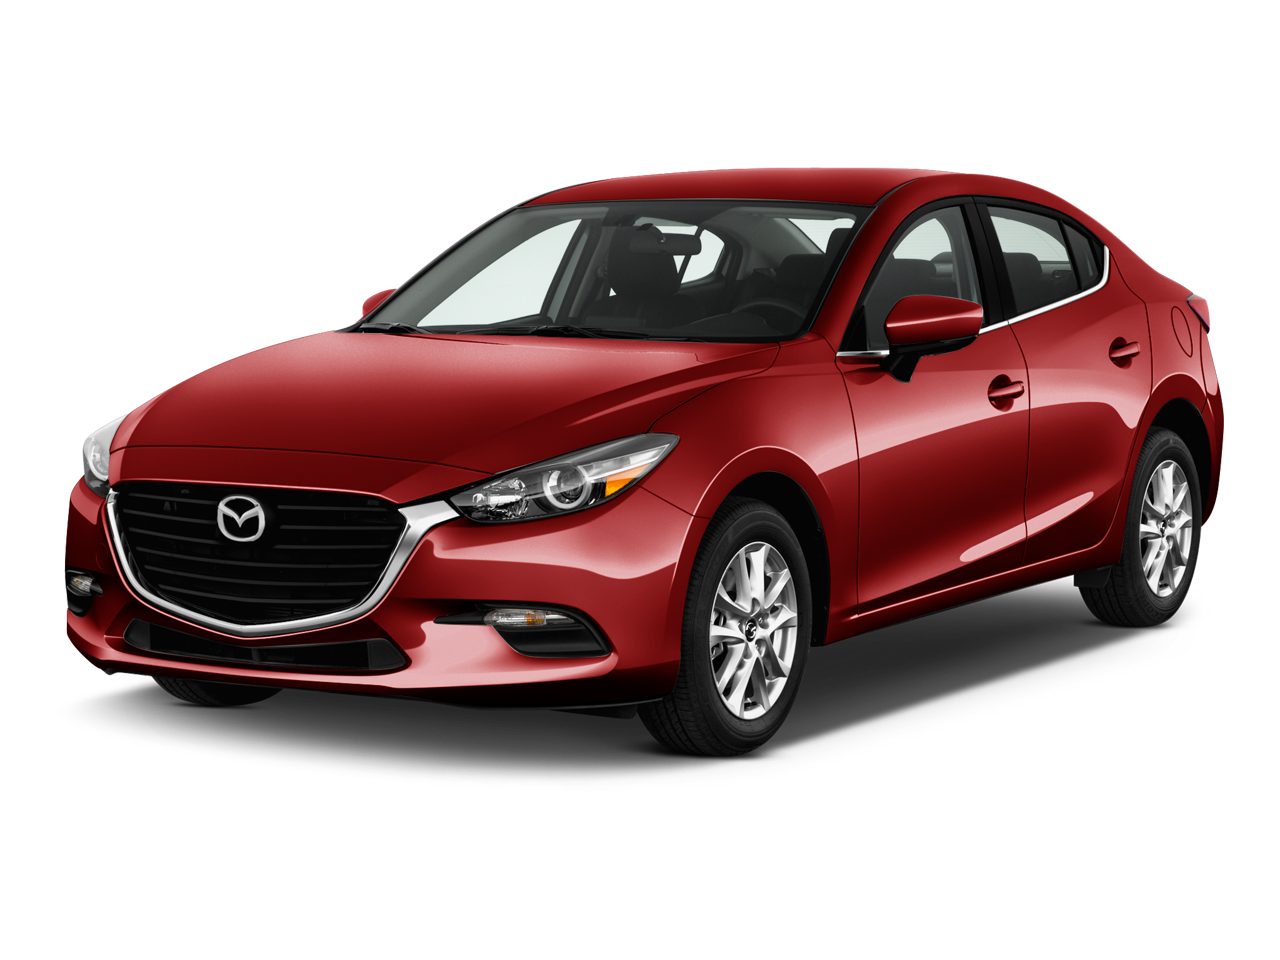 Mazda Dealer New Braunfels >> New 2017 Mazda Mazda3 Sport Auto - New Braunfels TX - World Car Mazda New Braunfels